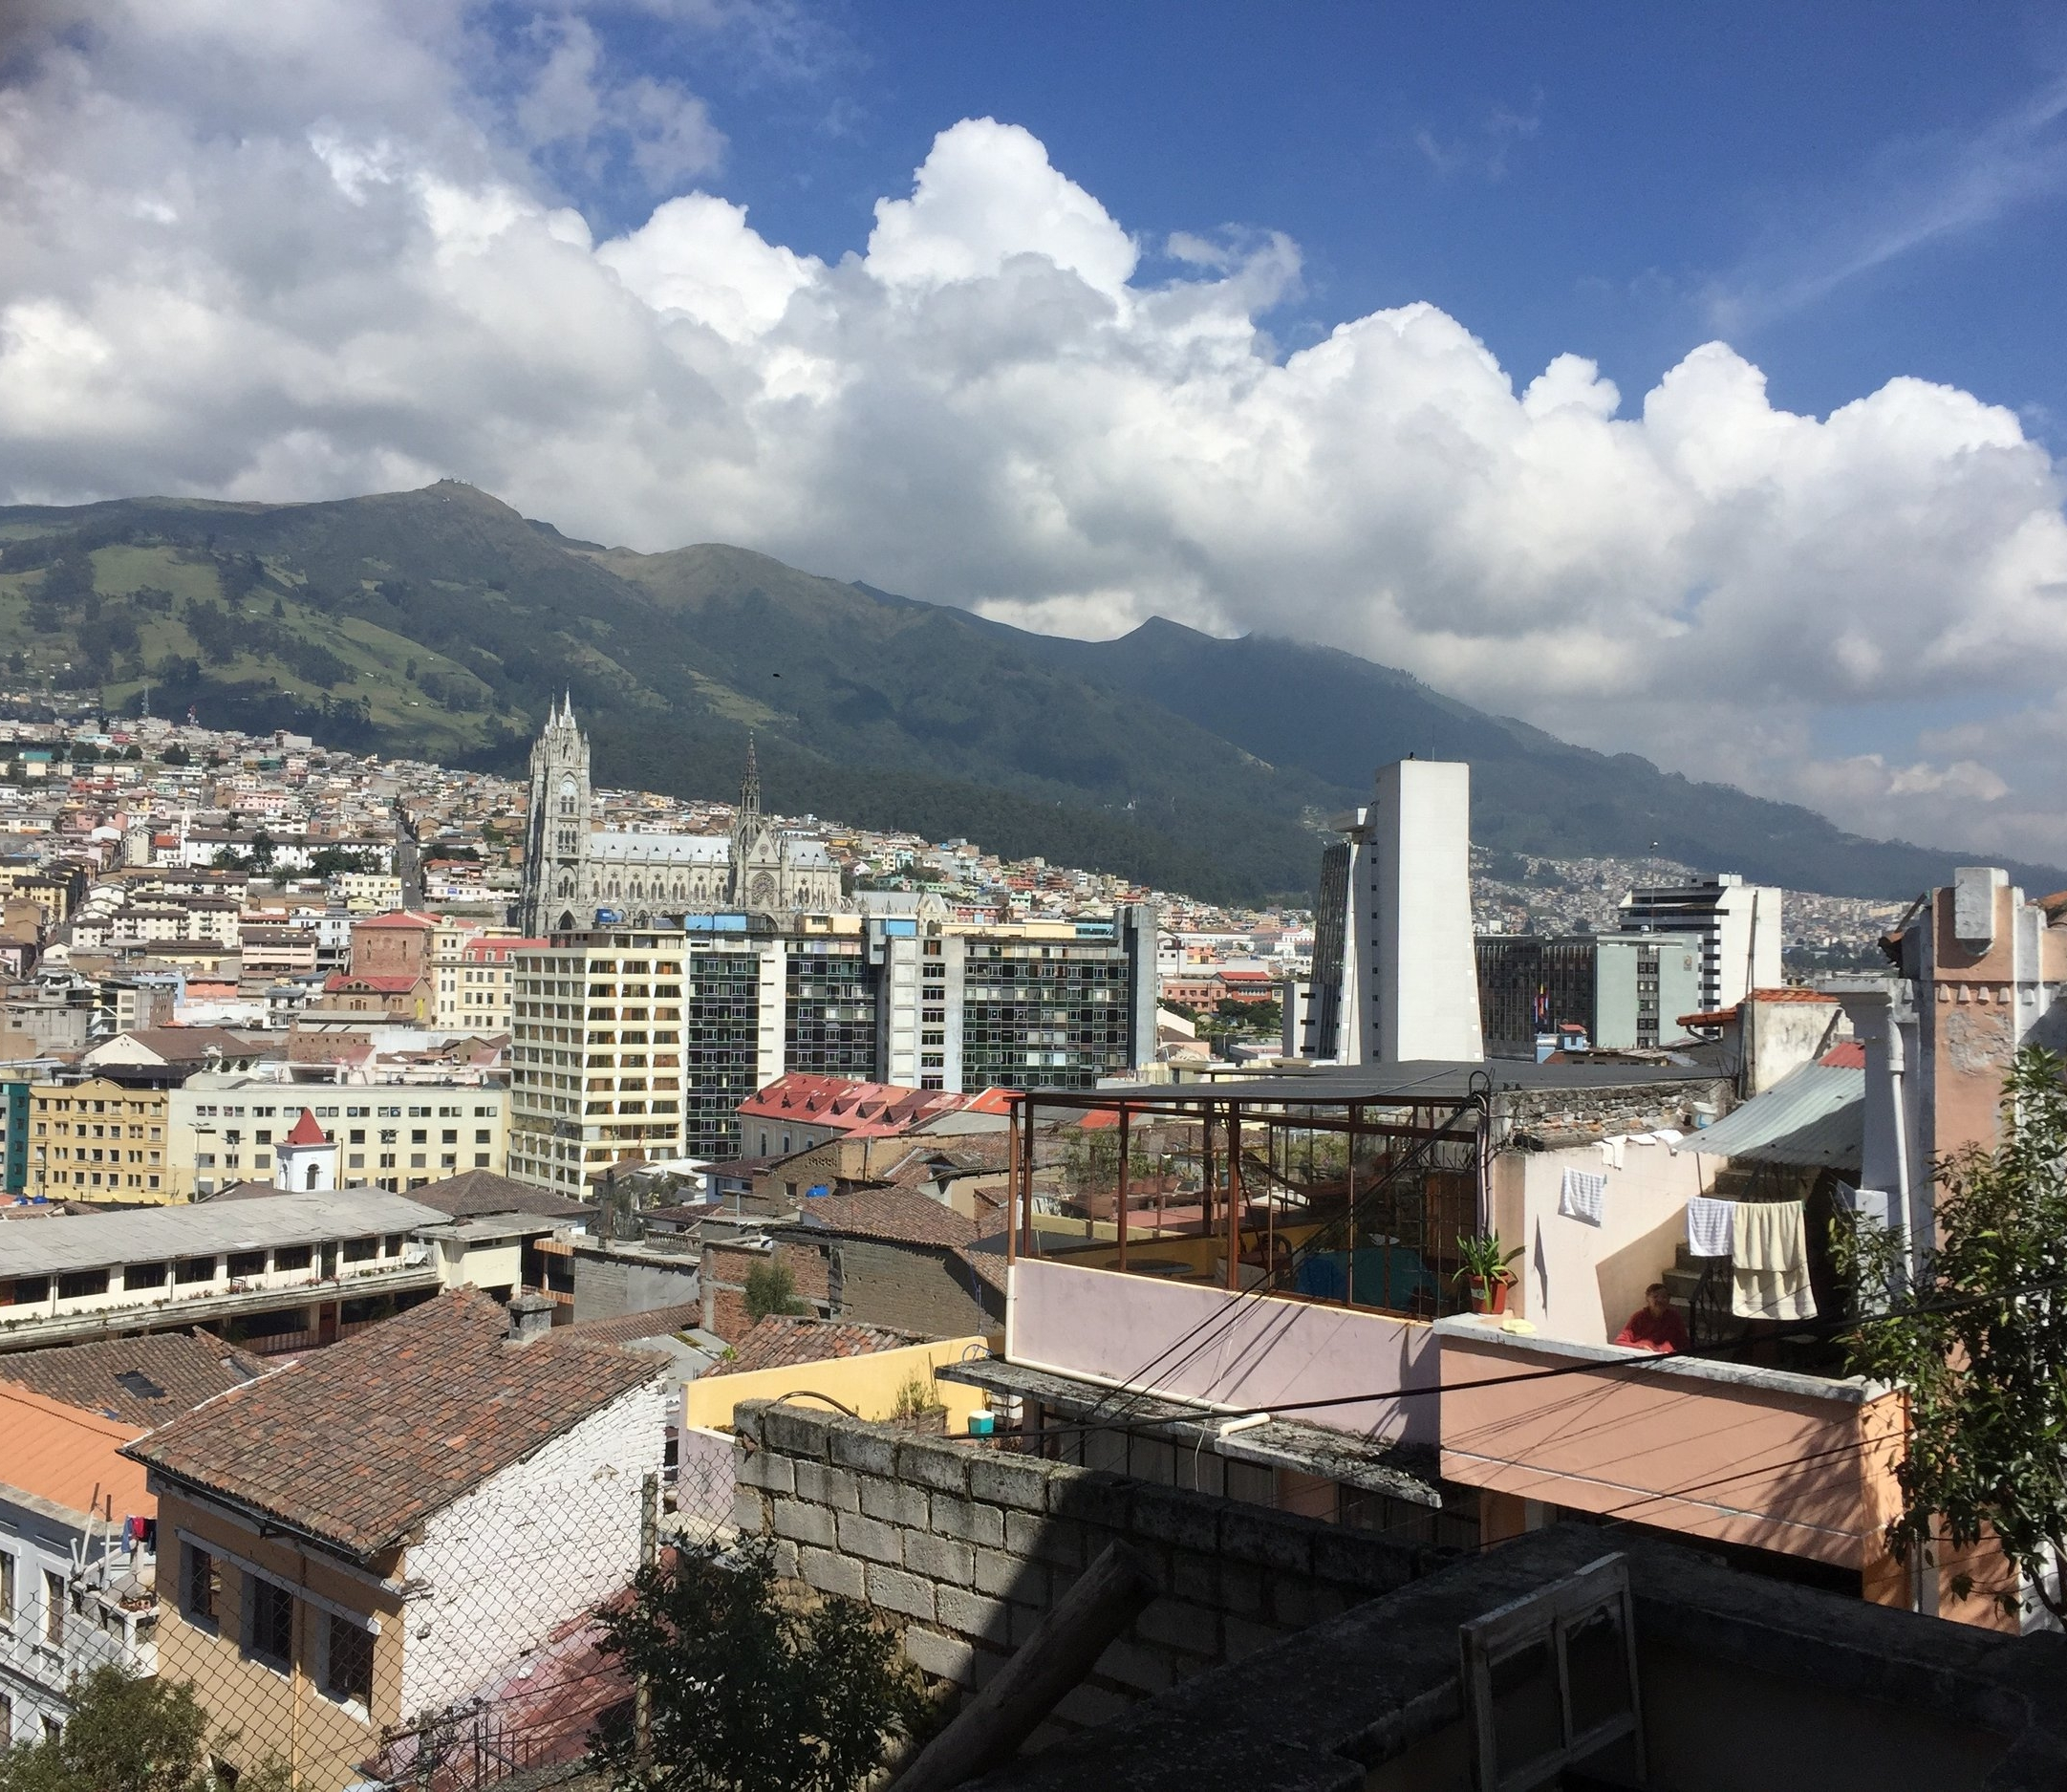 A limited view of expansive Quito.